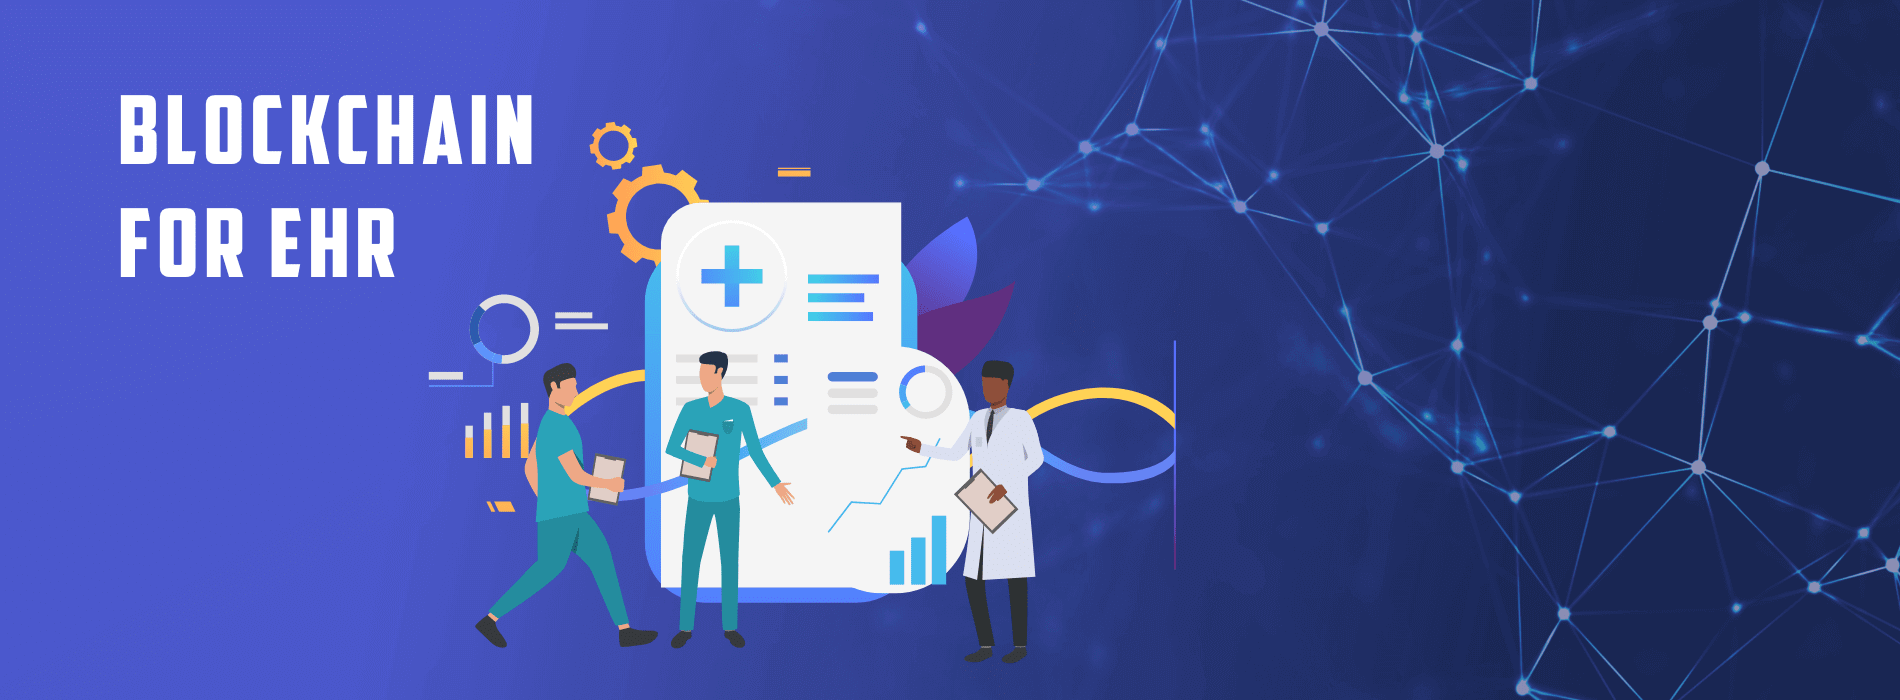 Blockchain for Electronic Health Records: The Possible Use Cases